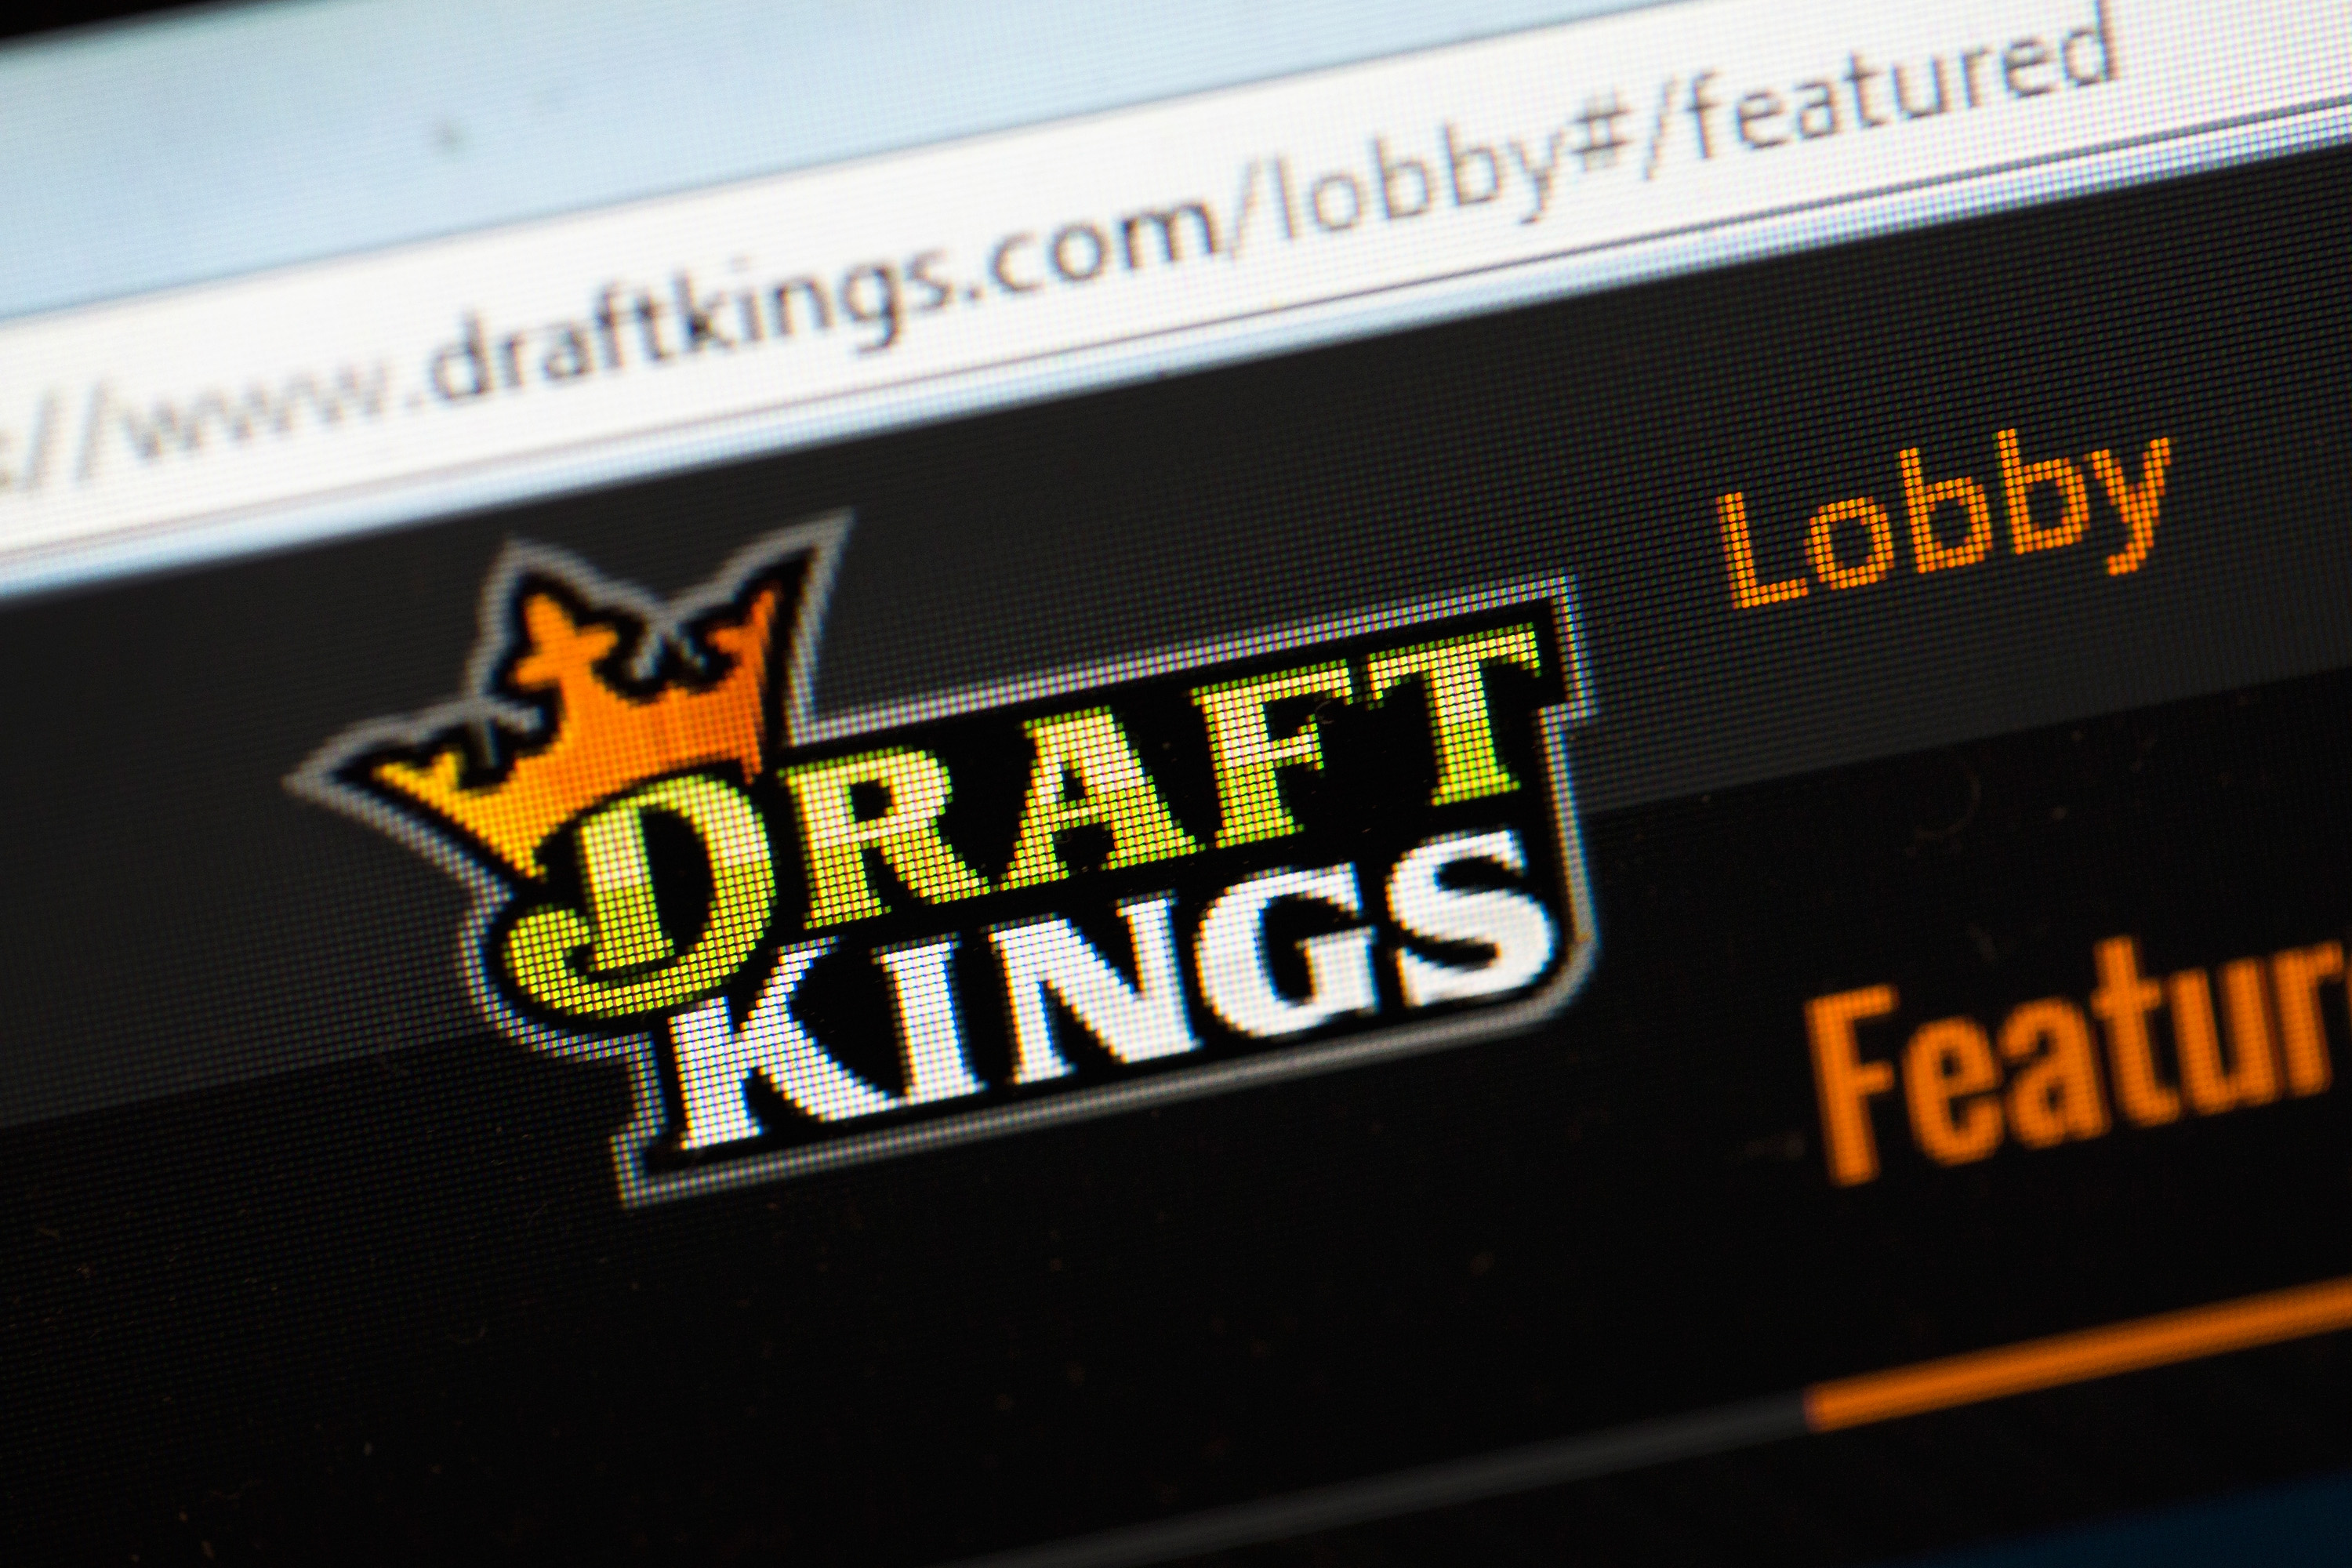 The fantasy sports website DraftKings is shown on Oct. 16, 2015 in Chicago, Ill.